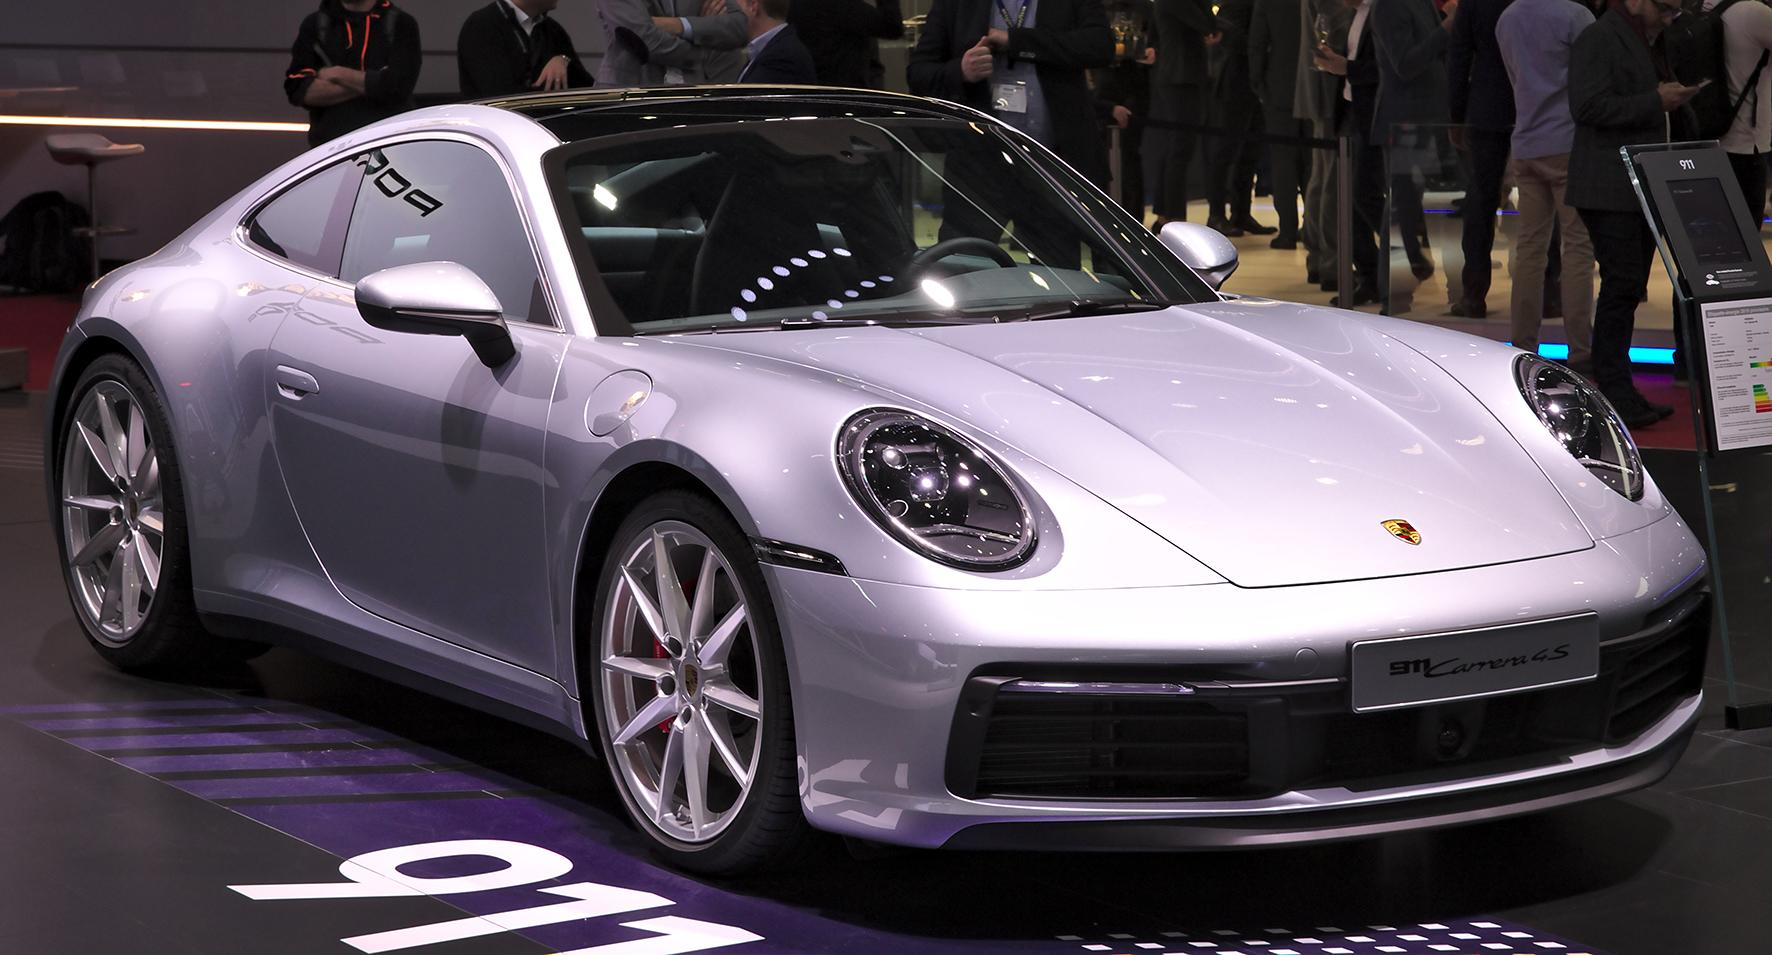 PTSG helps Porsche to stay ahead